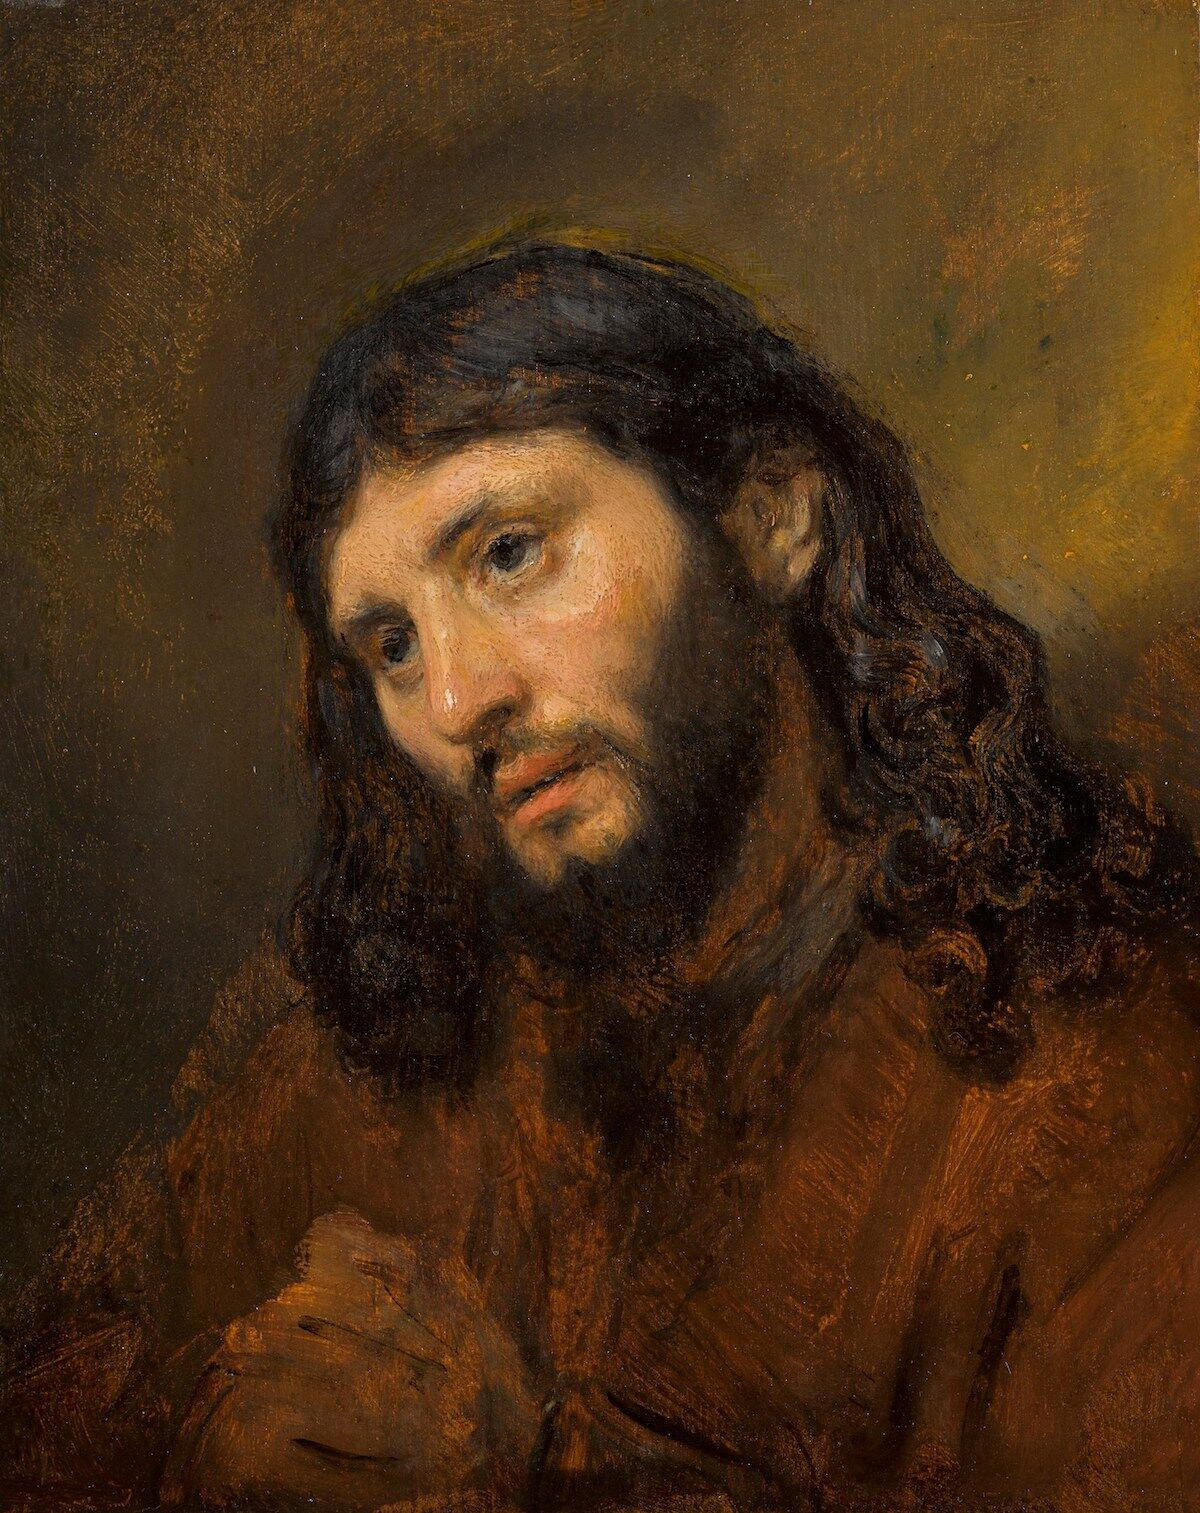 Rembrandt van Rijn, Head of a young man, with clasped hands: Study of the figure of Christ, c. 1648–56, oil on oak panel. Est. £6–8 million, sold for £9,480,800 at Sotheby's London in December 2018. Image courtesy Sotheby's.